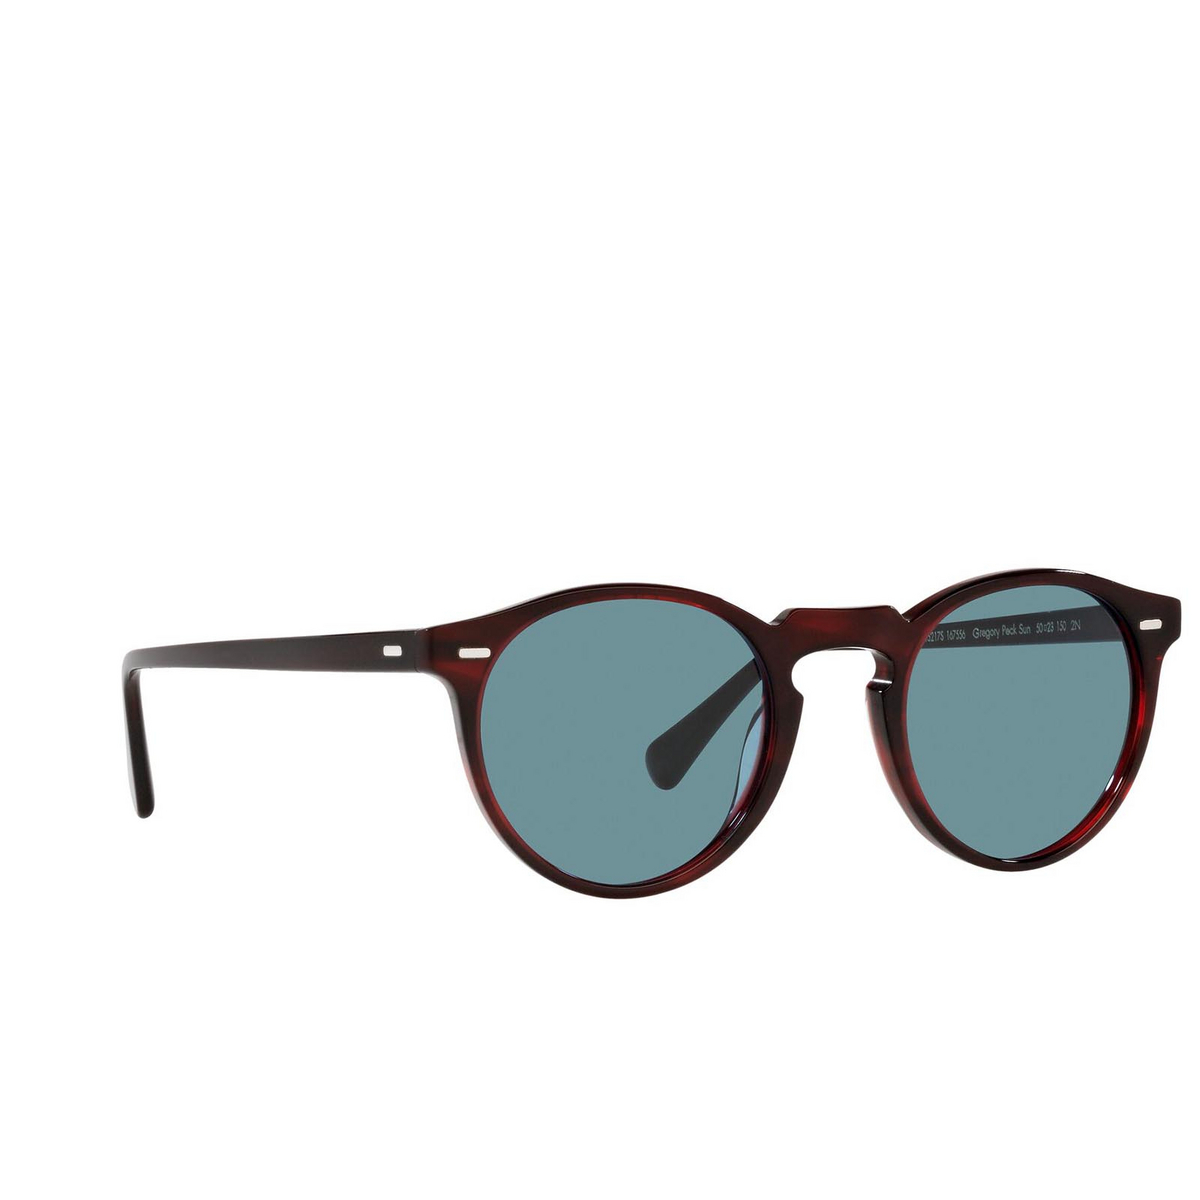 Oliver Peoples® Round Sunglasses: Gregory Peck Sun OV5217S color Bordeaux Bark 167556 - three-quarters view.